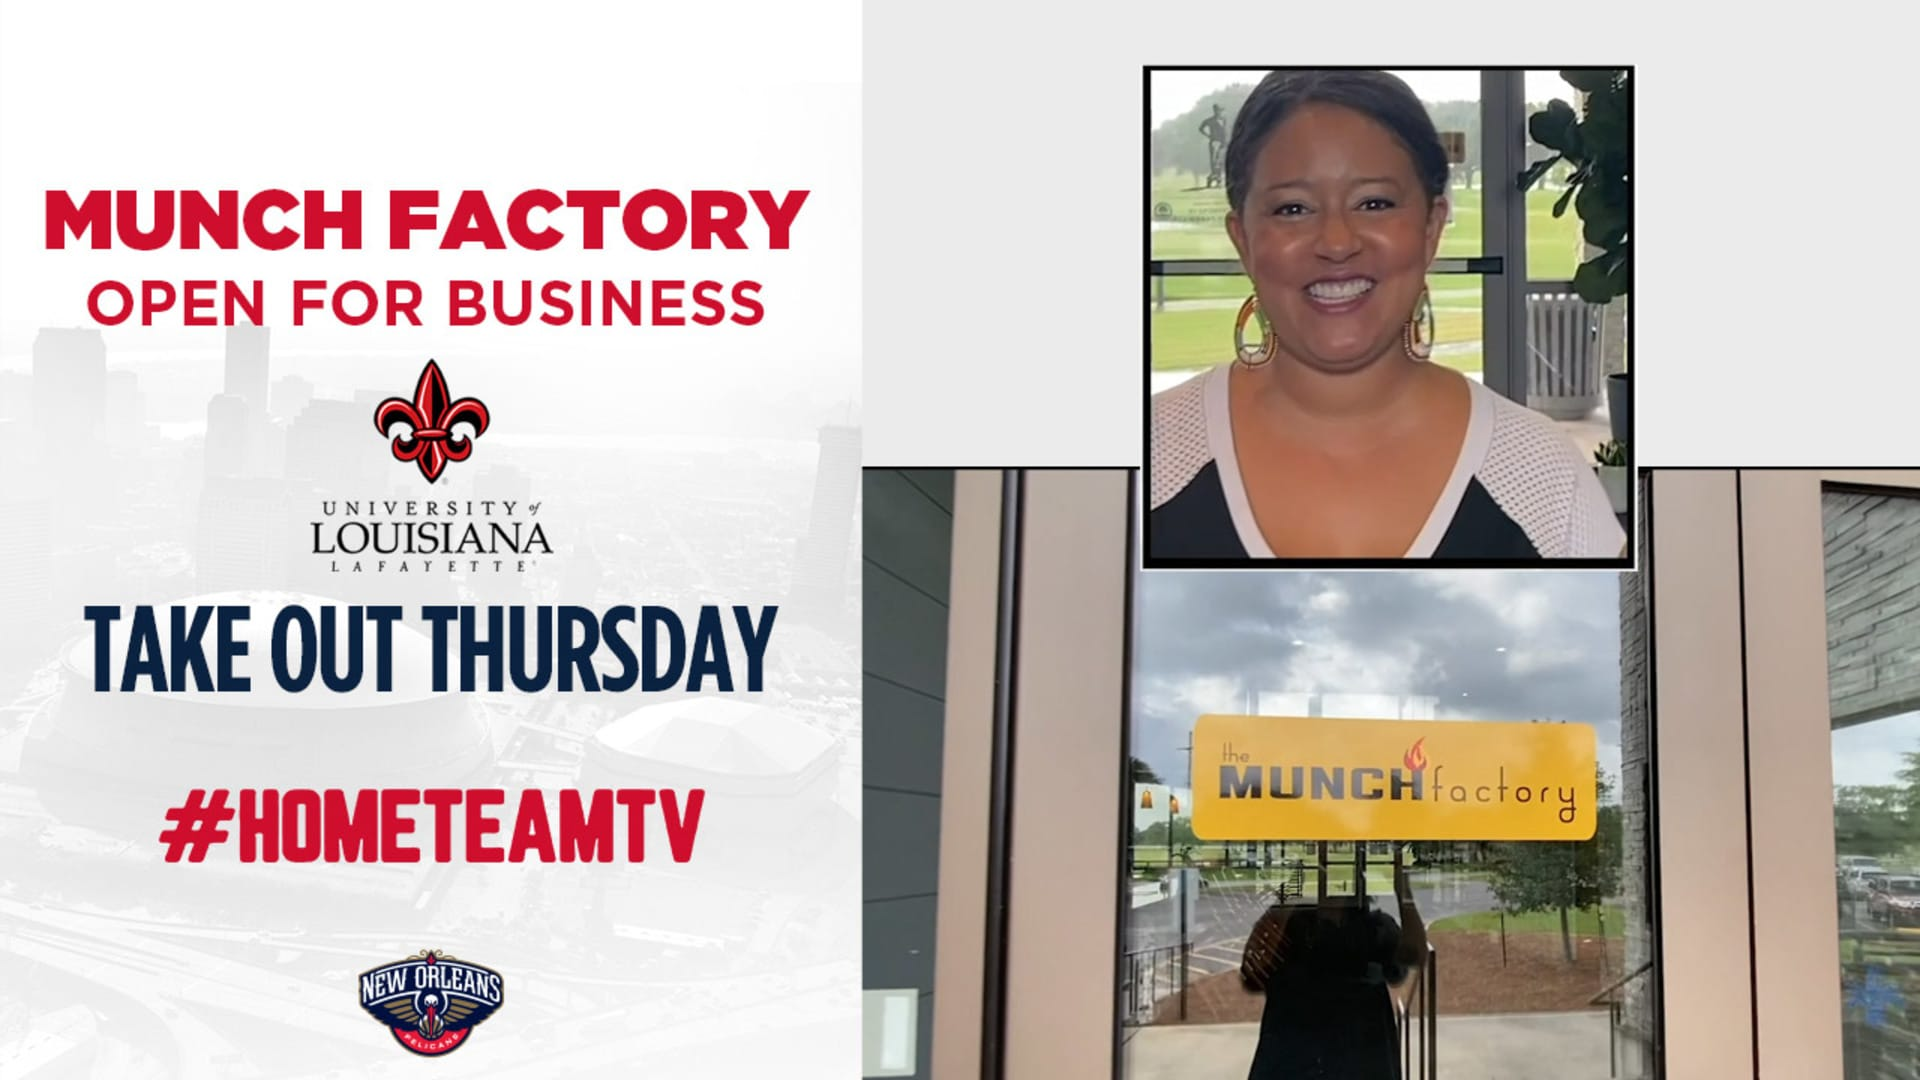 HomeTeamTV: Head to the Munch Factory for Takeout Thursday, 6/11/20